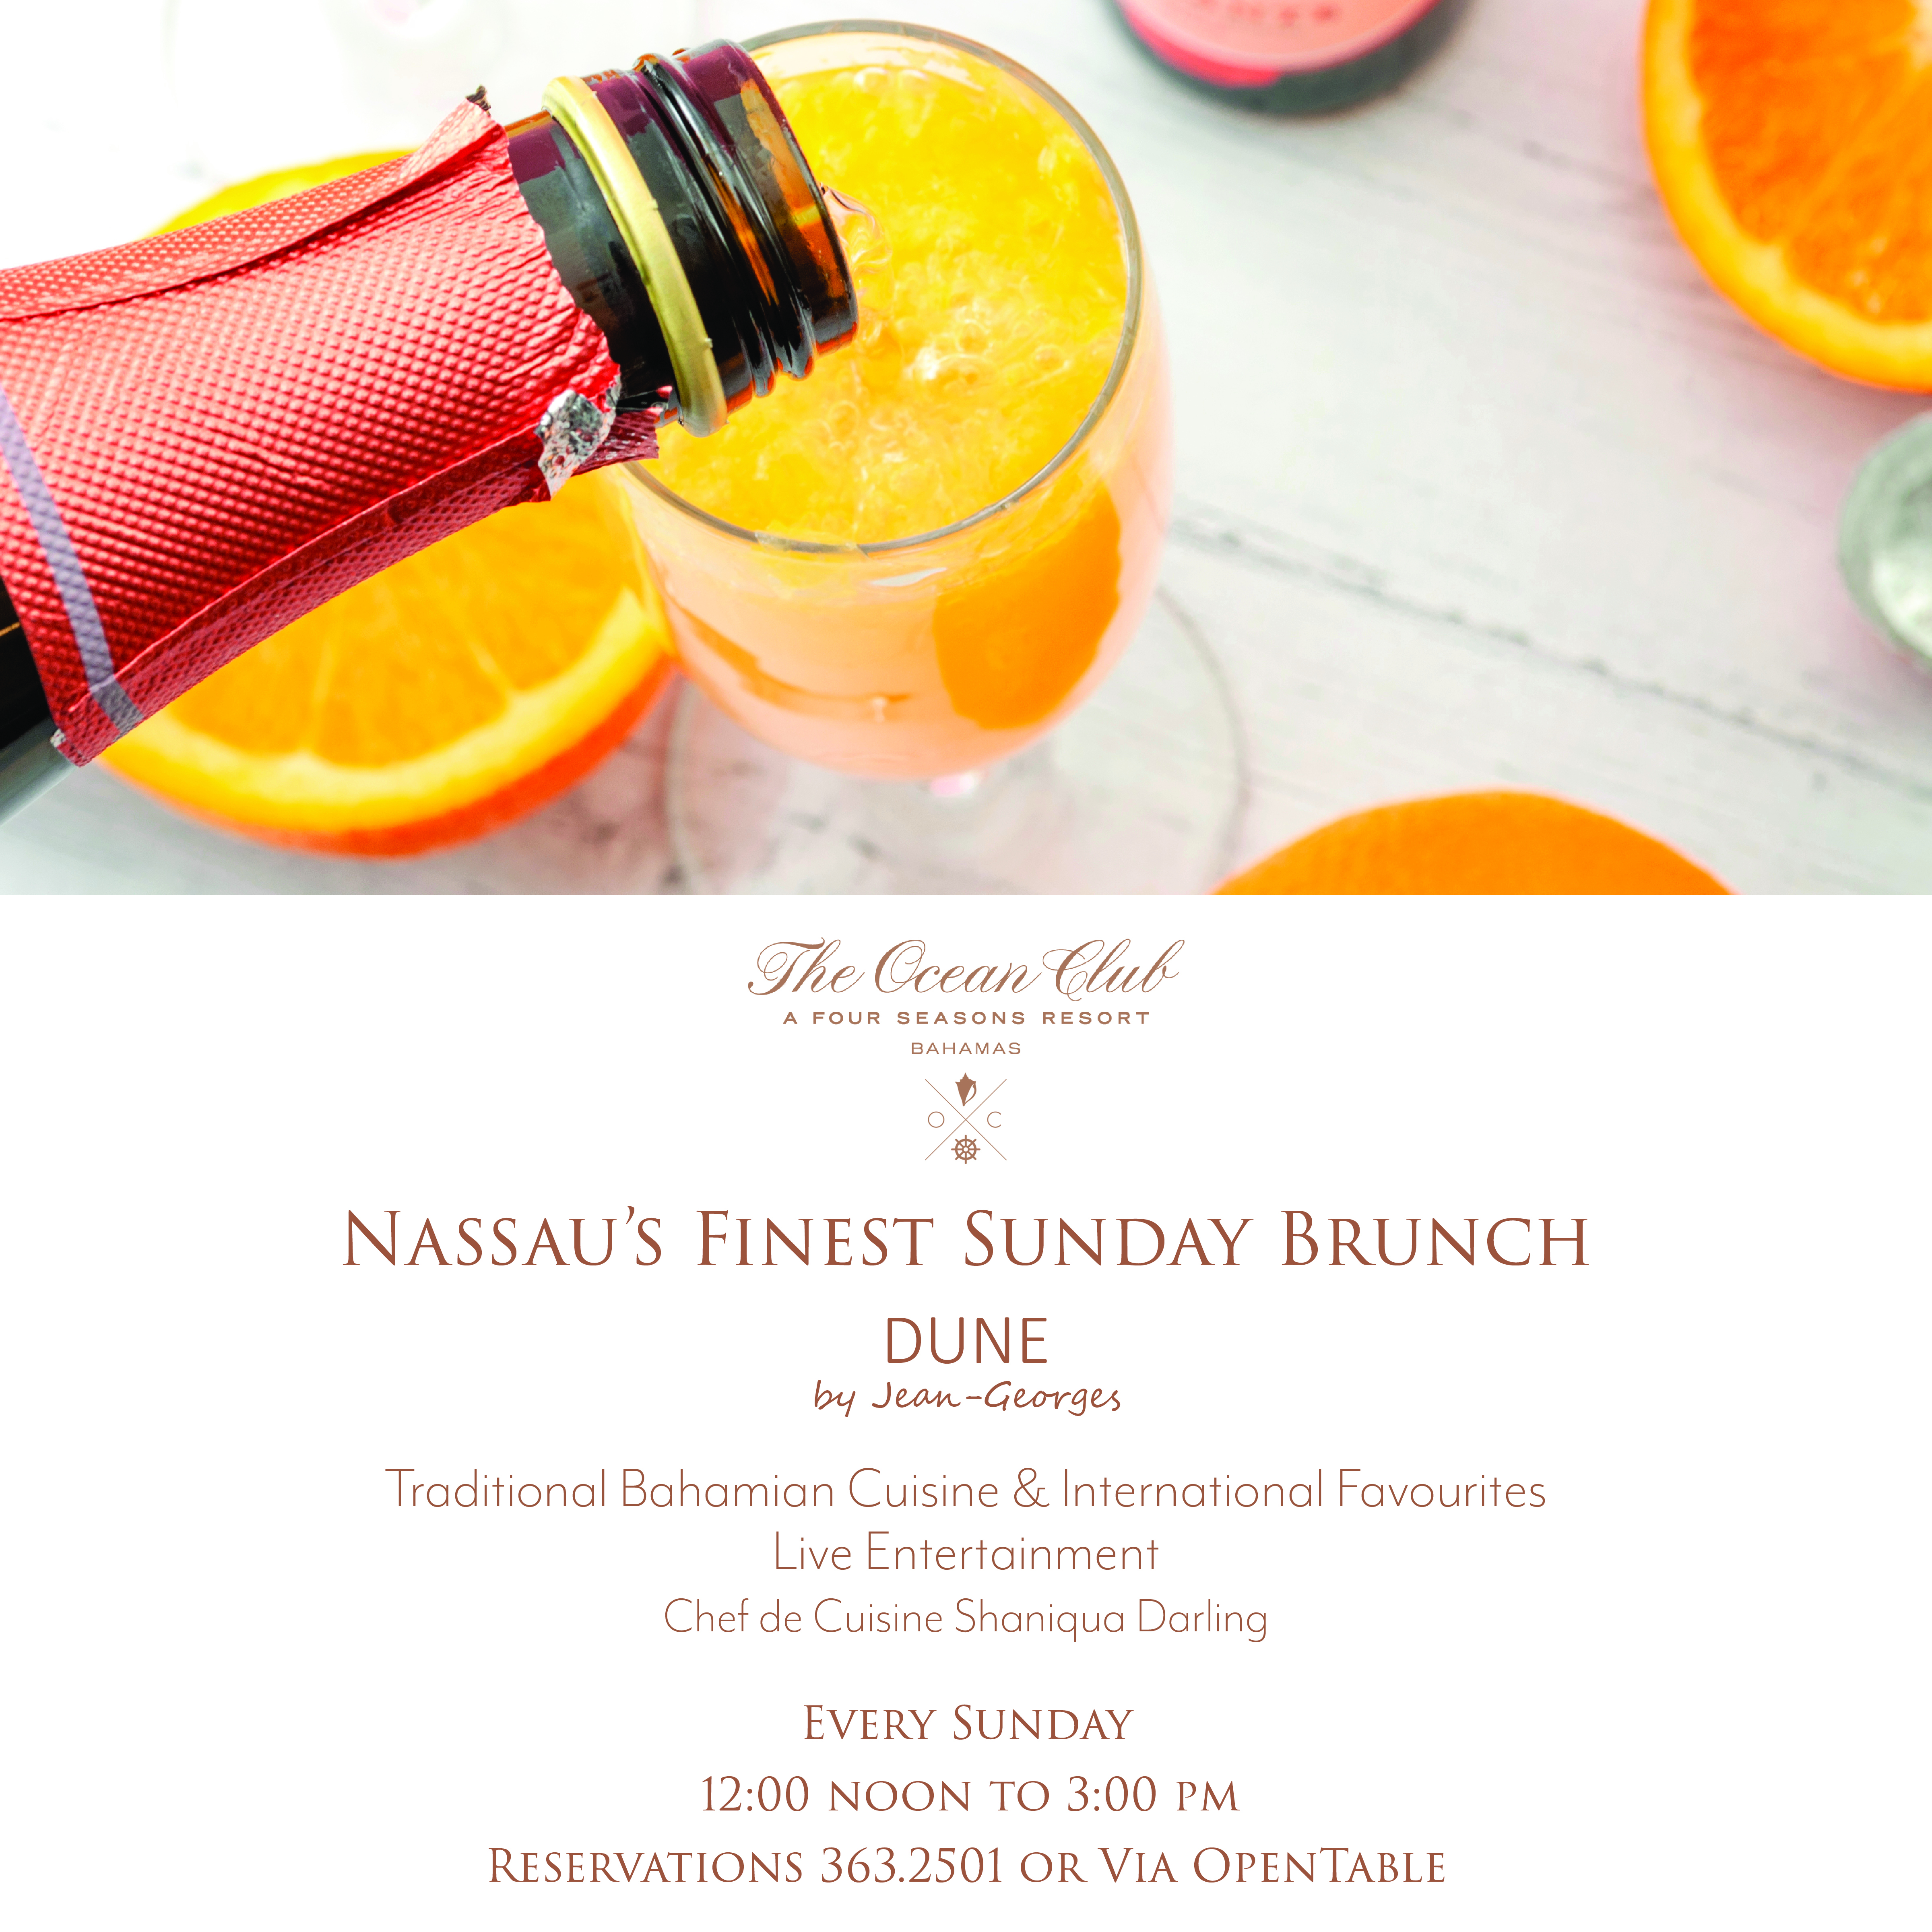 Bahamian Sunday Brunch at The Ocean Club